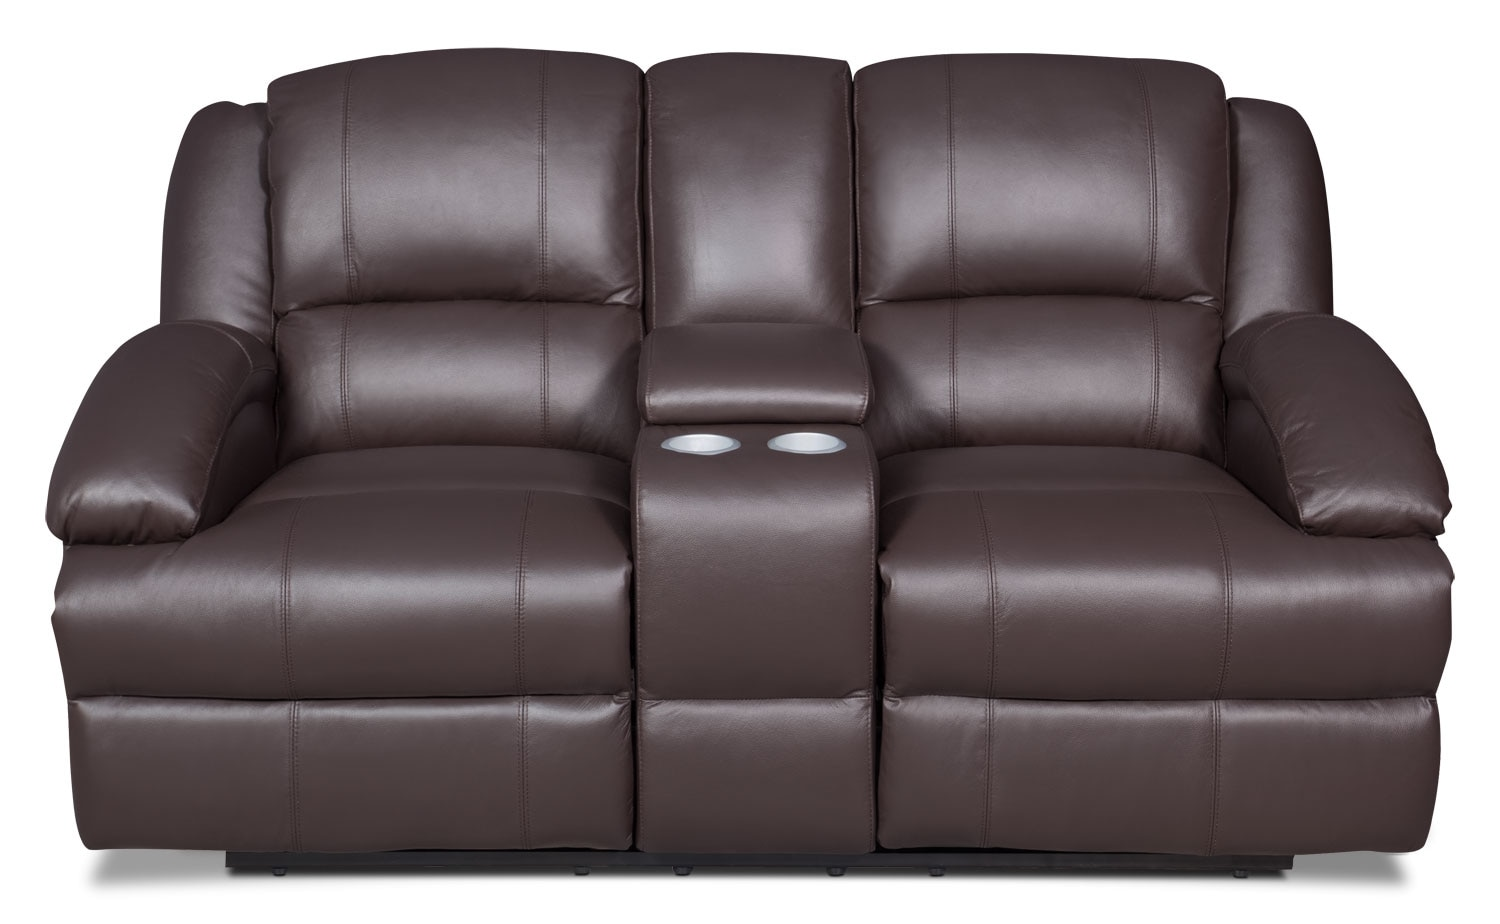 Living Room Furniture - Luka Genuine Leather Reclining Loveseat with Console - Brown